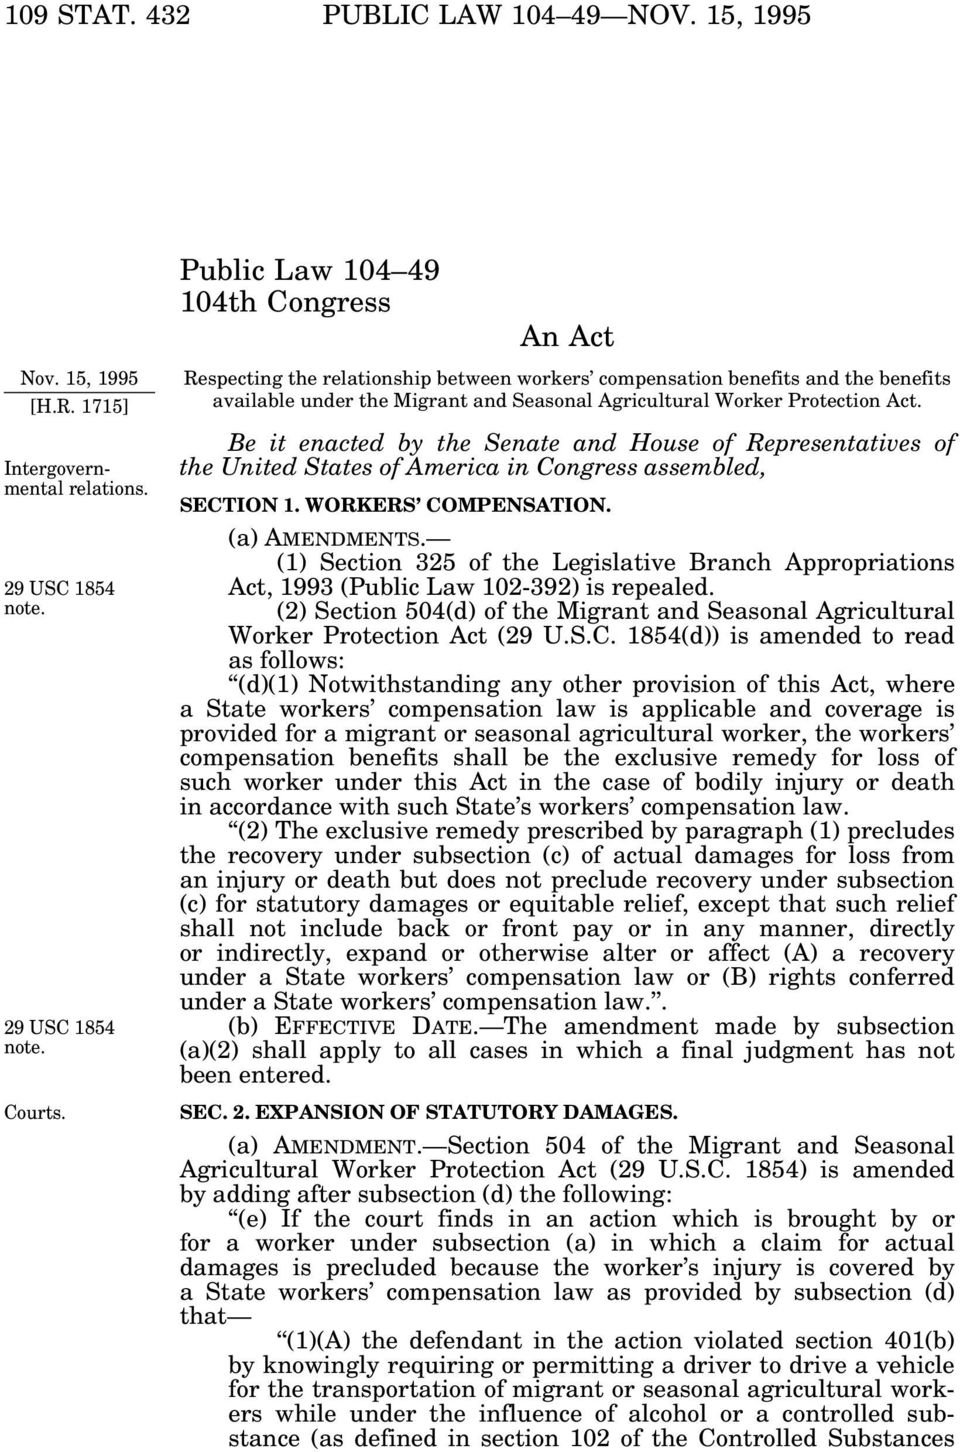 Be it enacted by the Senate and House of Representatives of the United States of America in Congress assembled, SECTION 1. WORKERS COMPENSATION. (a) AMENDMENTS.